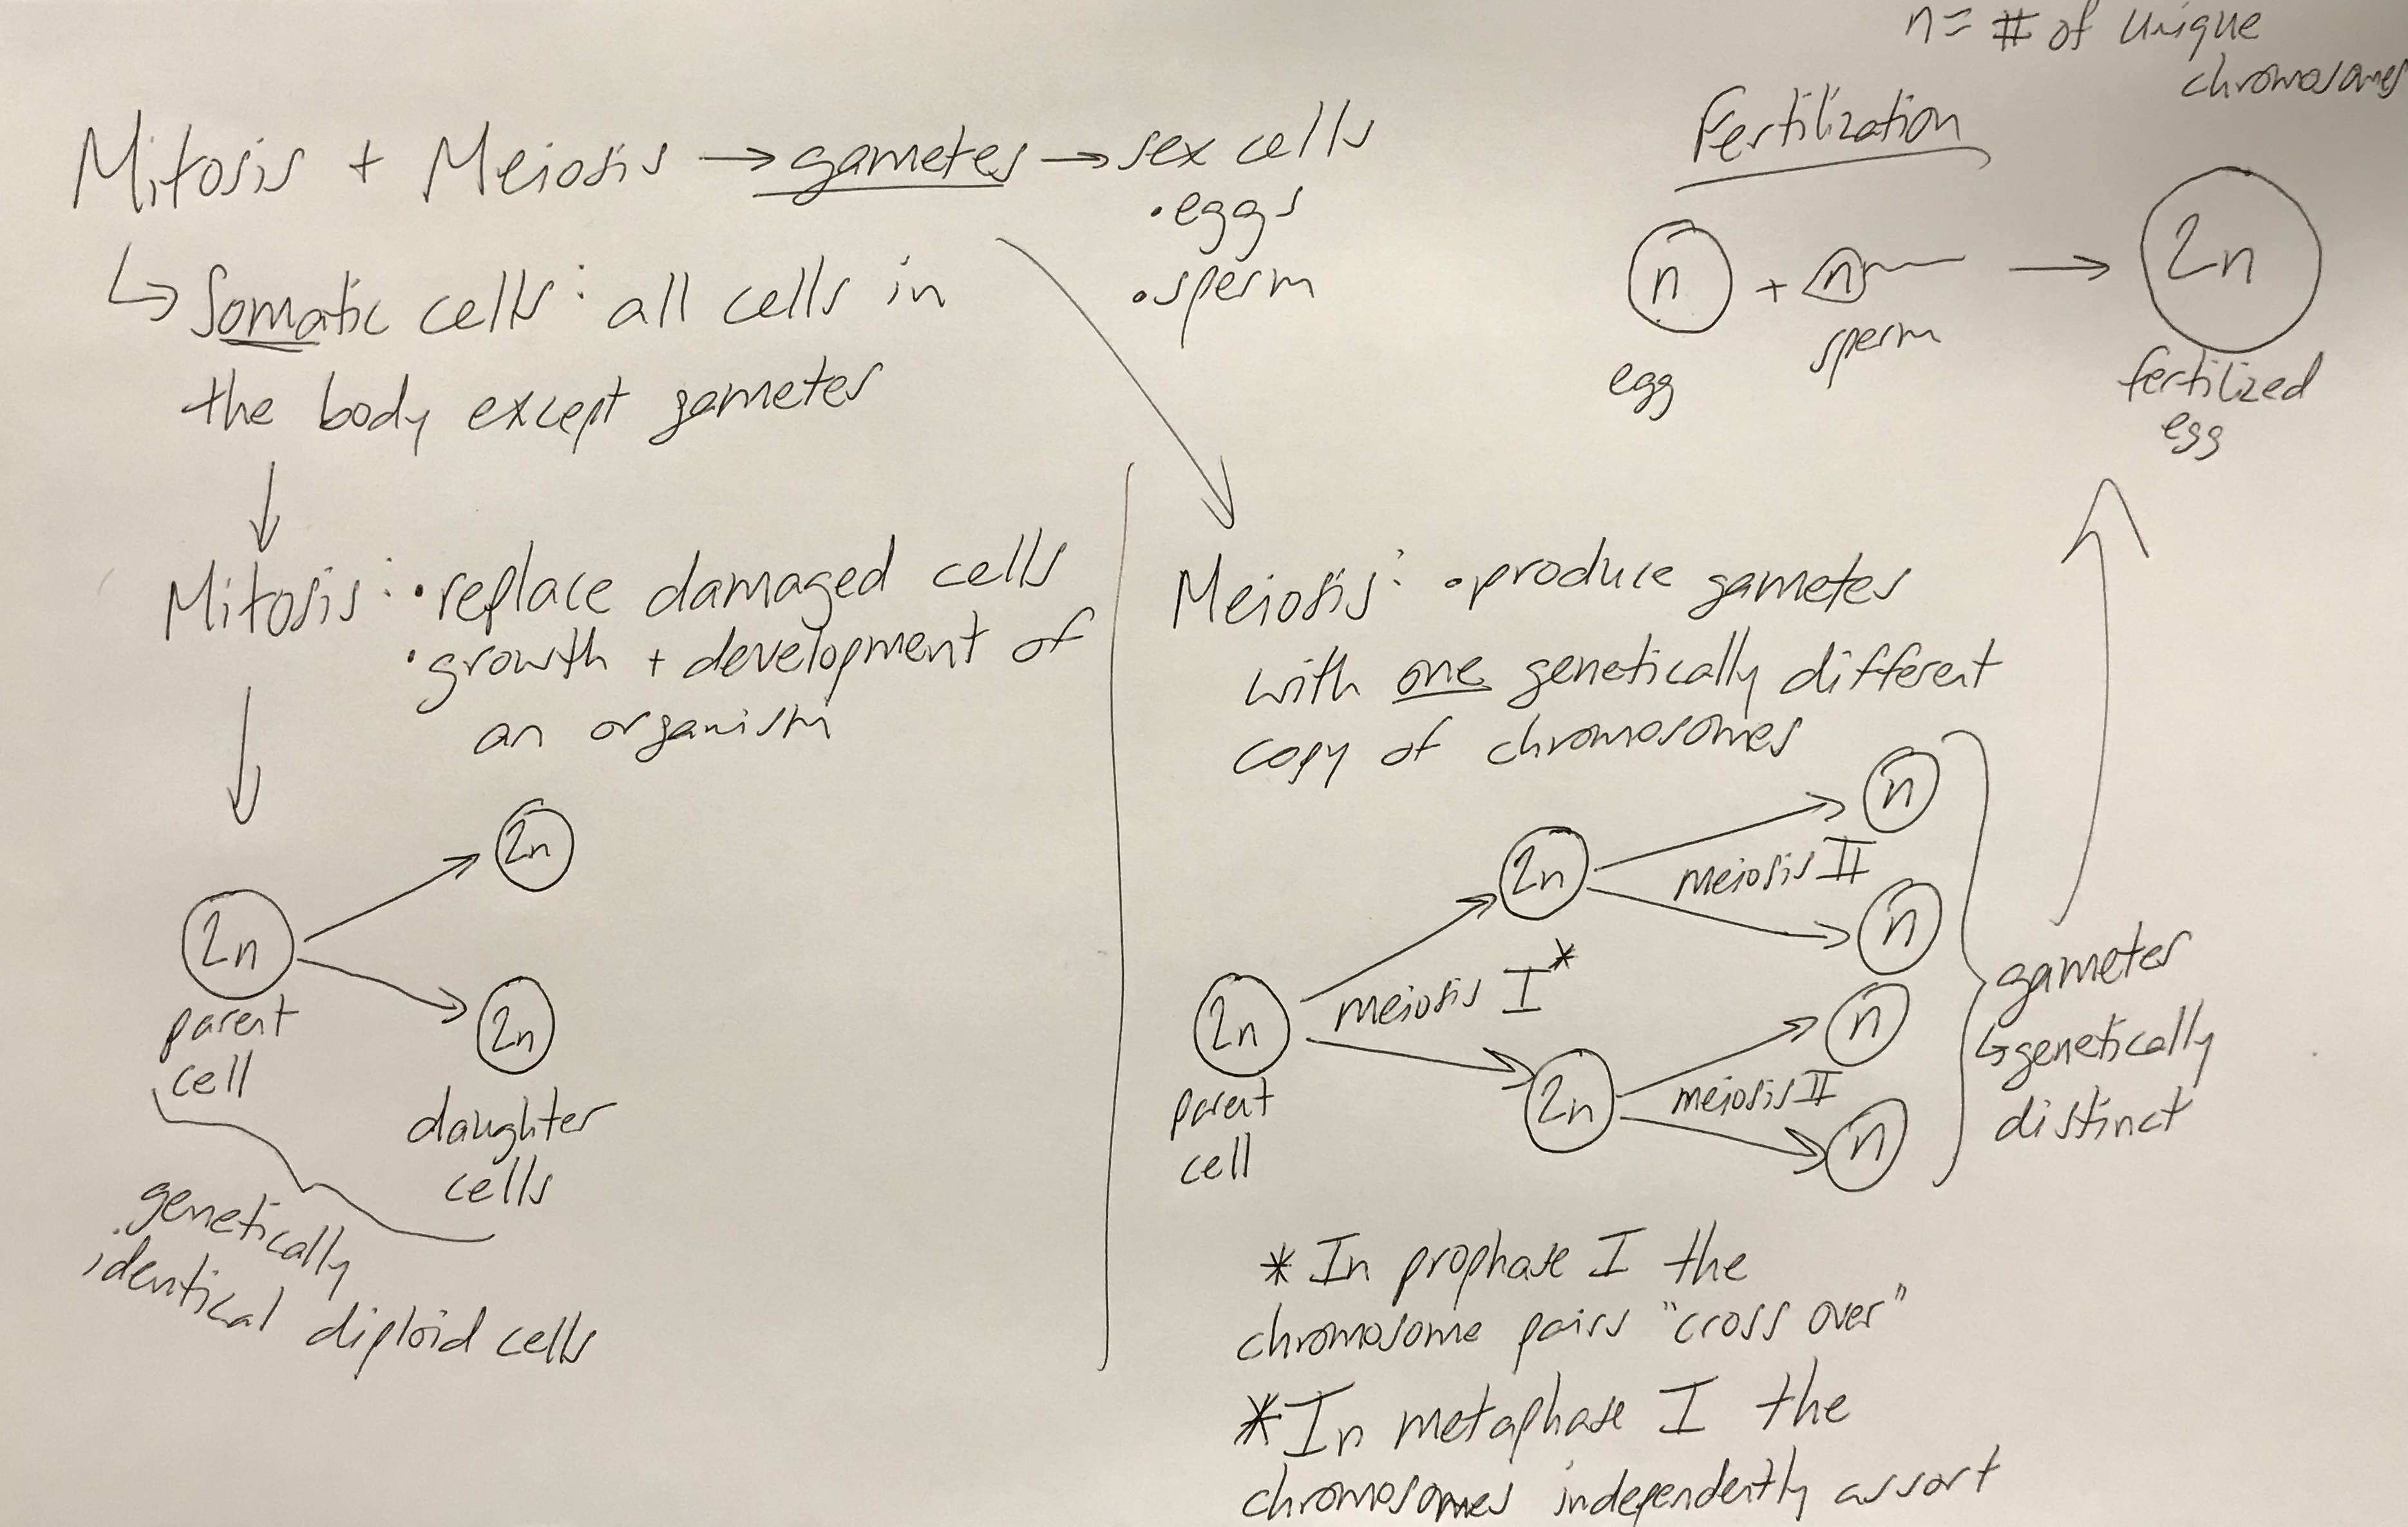 Review Comparing Mitosis And Meiosis